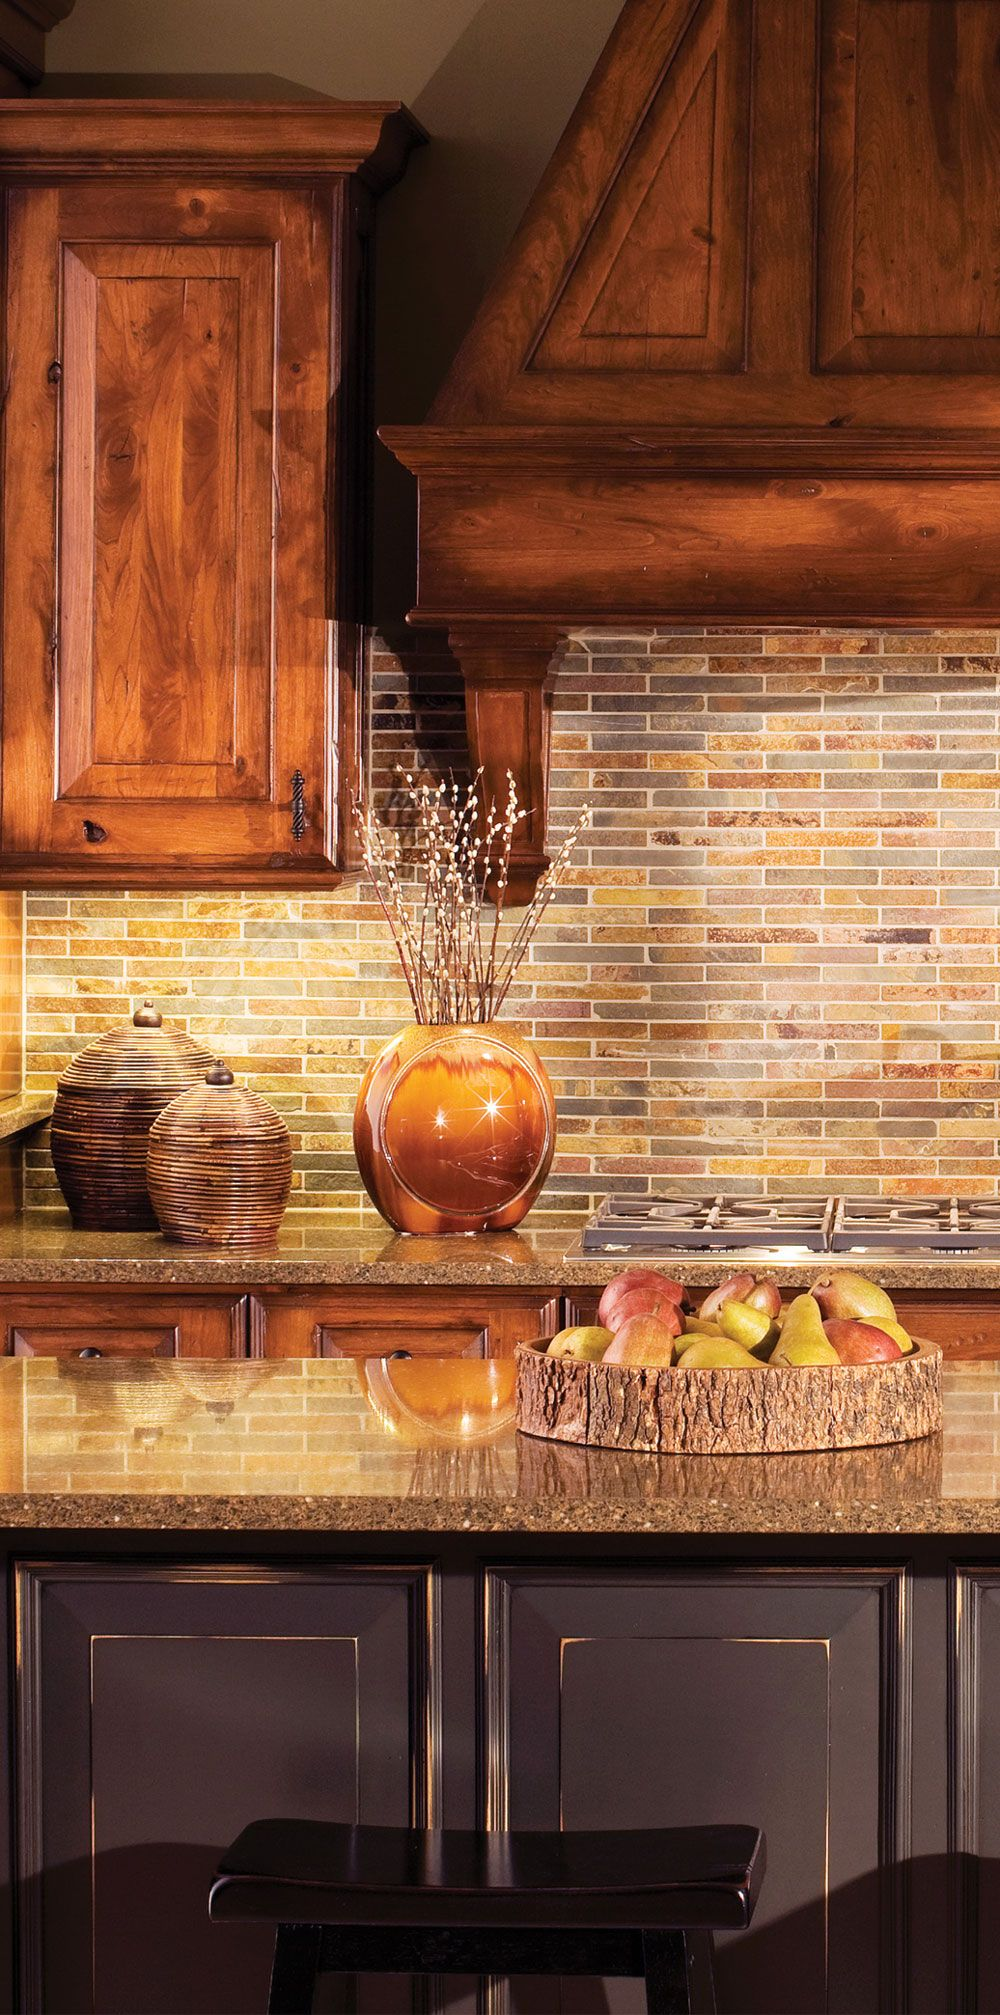 Rustic Kitchen Design By Dura Supreme Cabinetry Rustic Kitchen